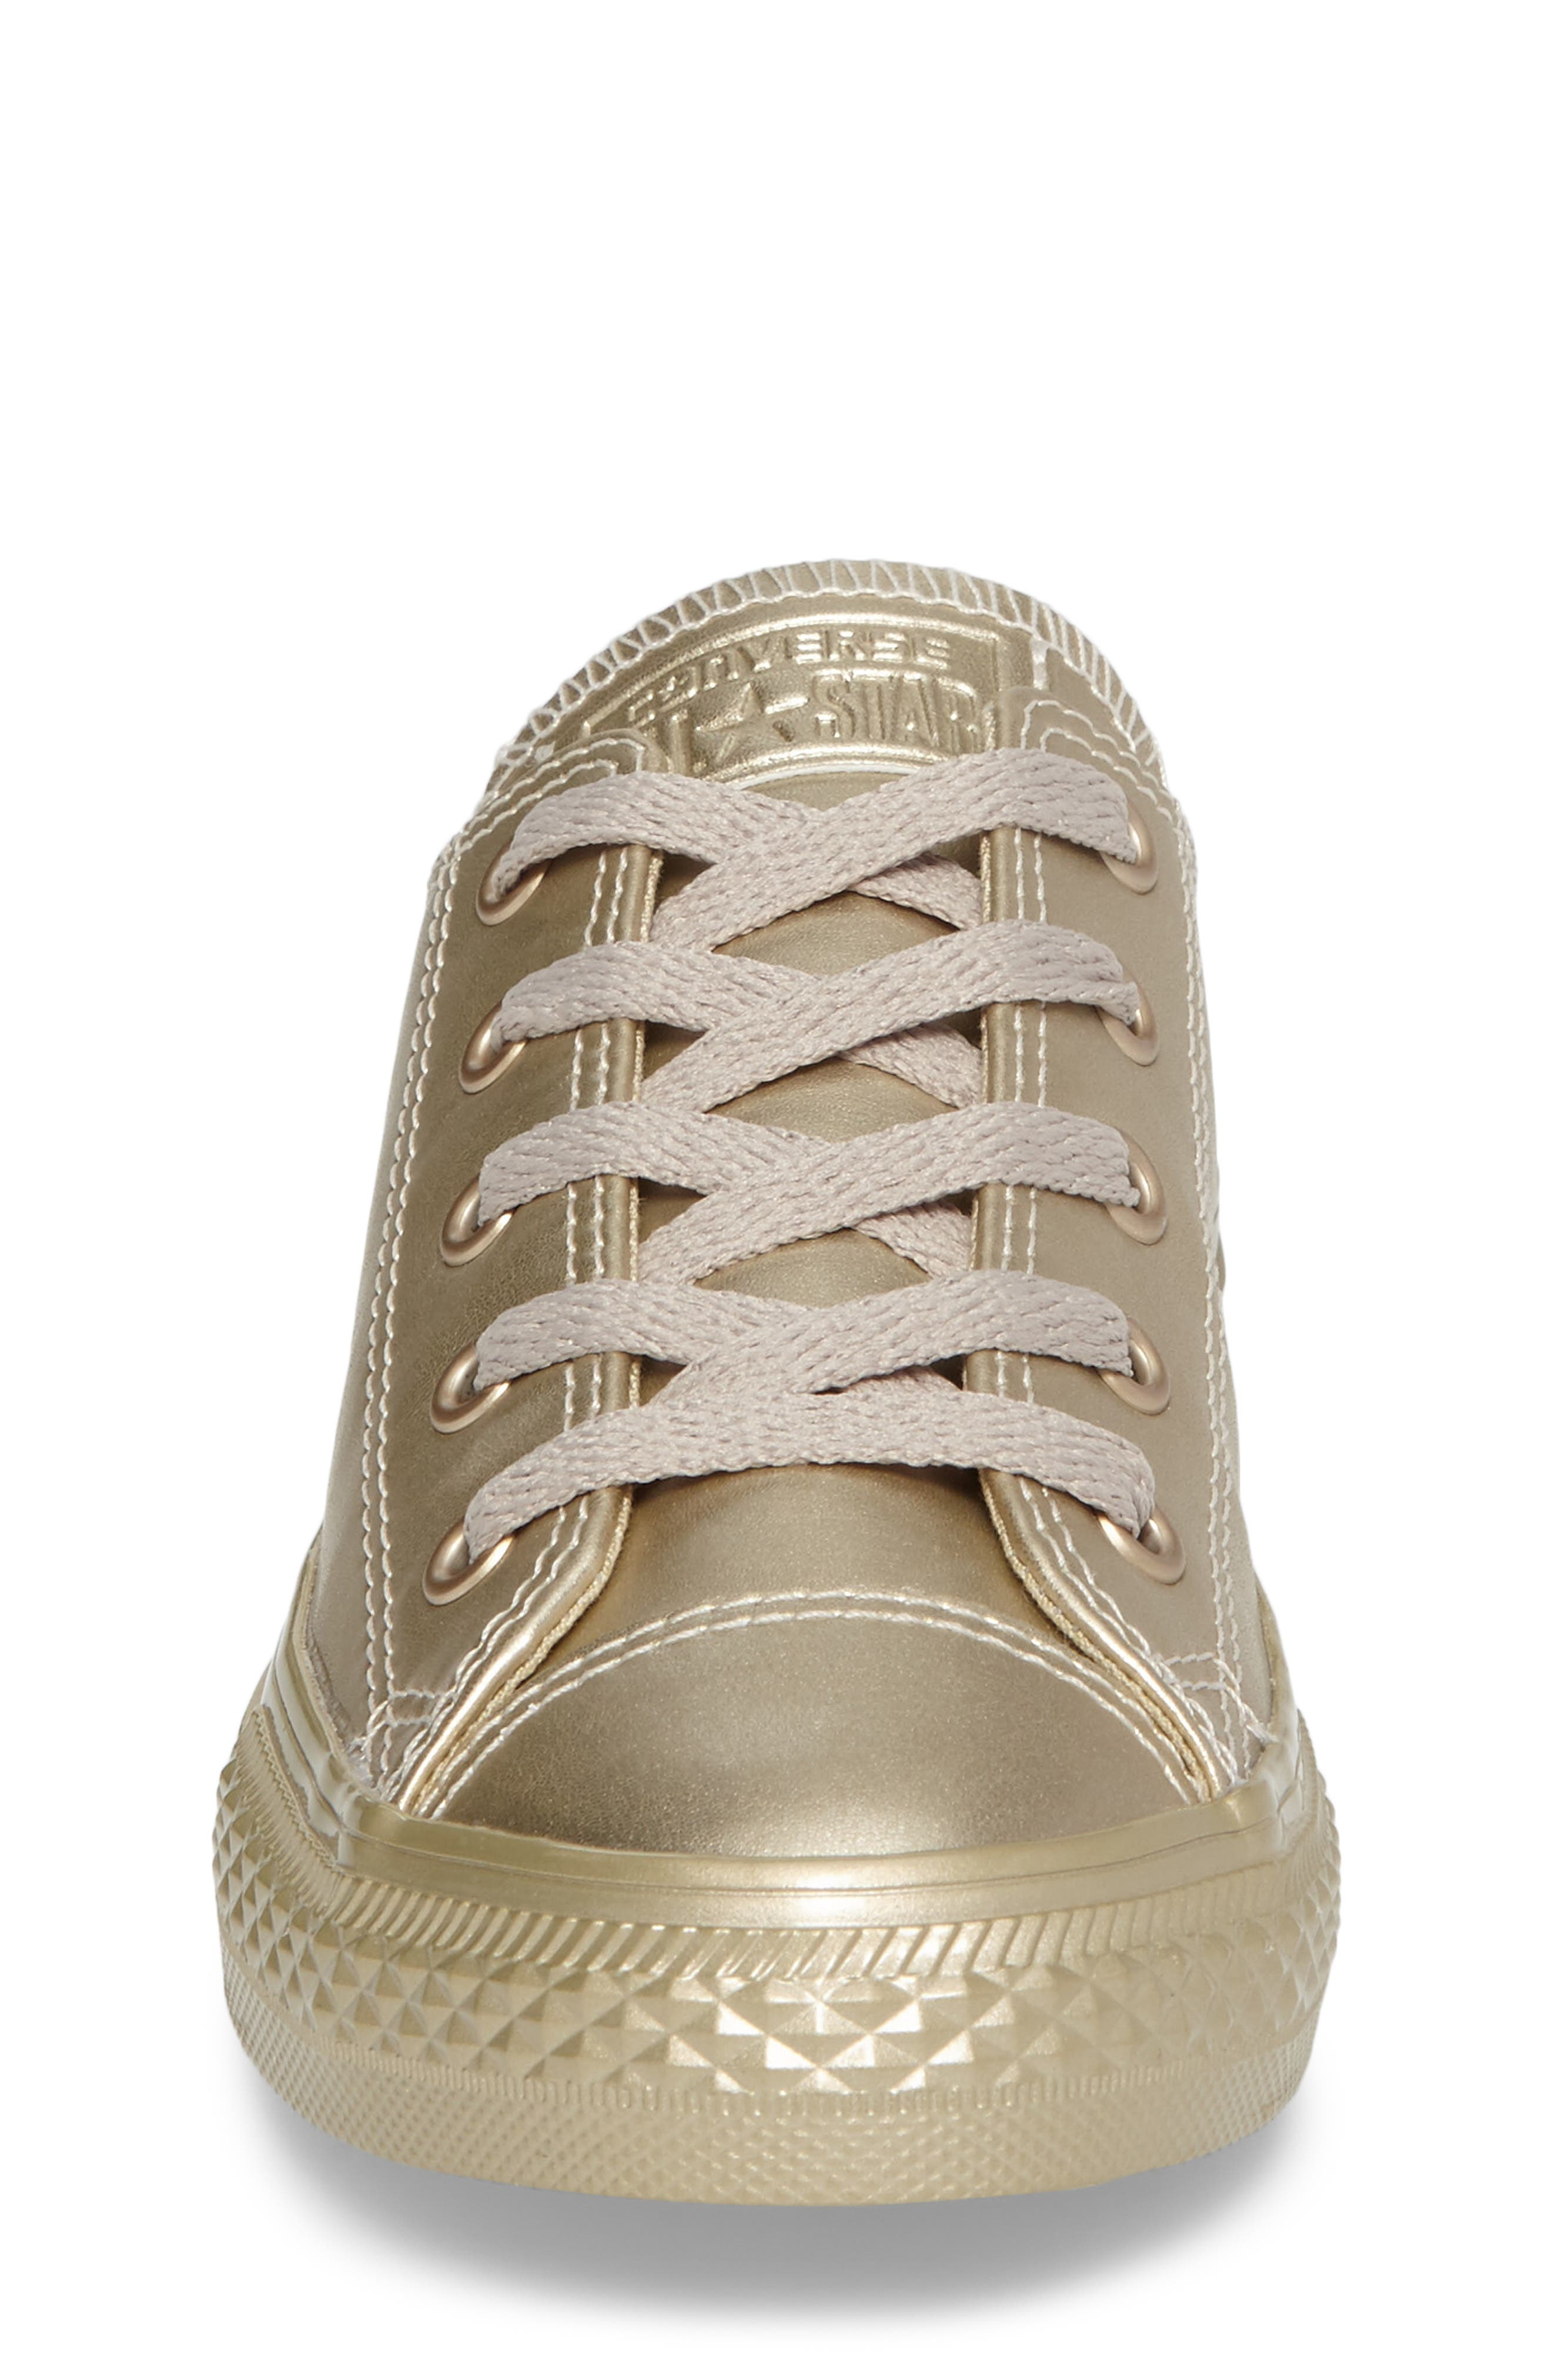 Chuck Taylor<sup>®</sup> All Star<sup>®</sup> Mono Metallic Low Top Sneaker,                             Alternate thumbnail 4, color,                             710